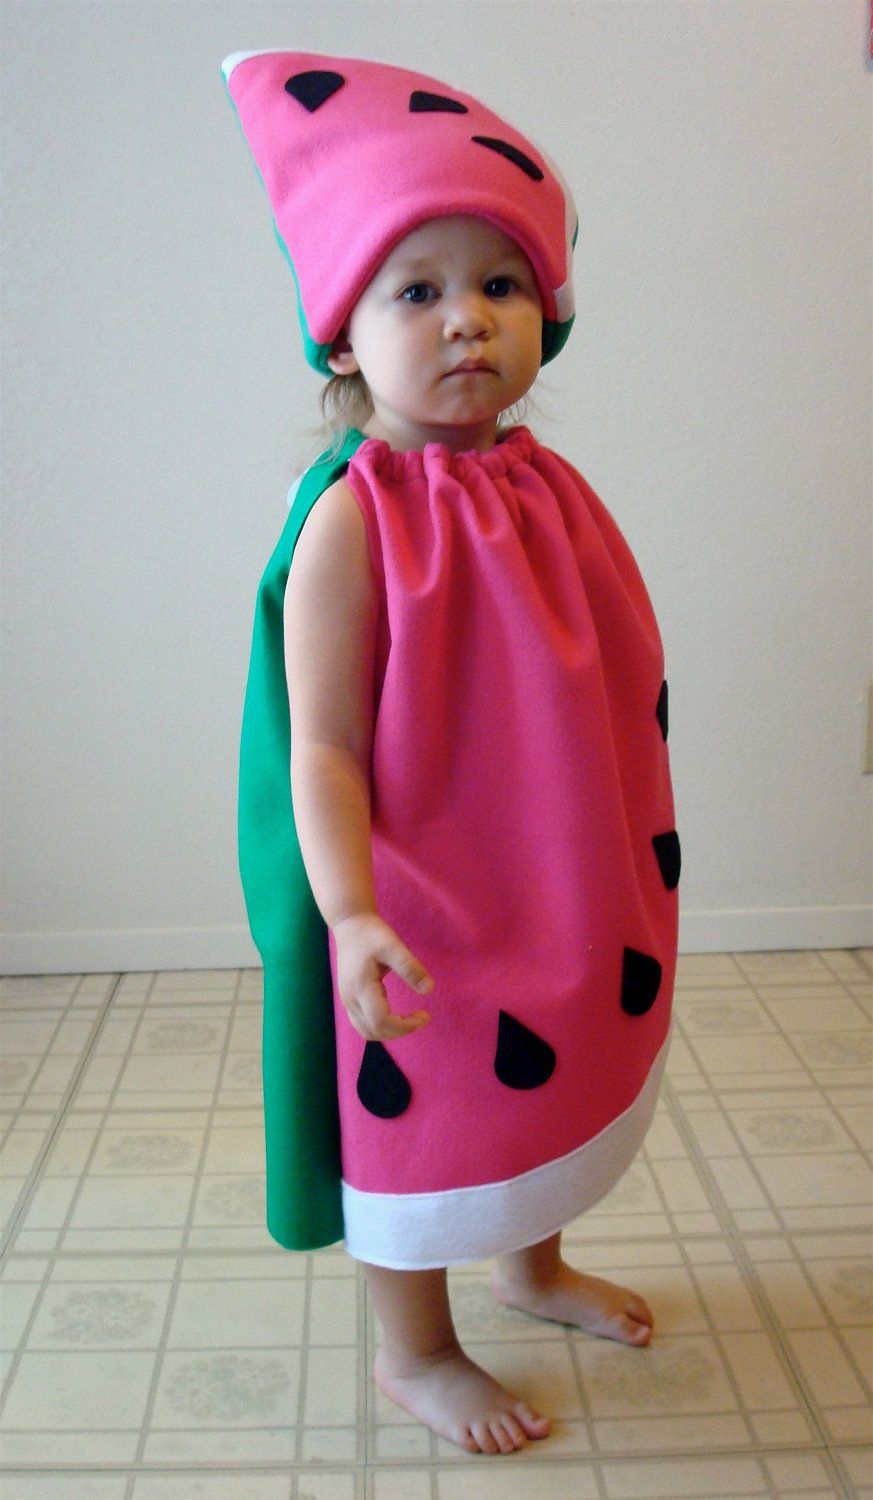 Baby Costume Watermelon Fruit Food Toddler Infant Newborn Halloween Costume  Pink Girl Costume by TheCostumeCafe on Etsy c5622191c15